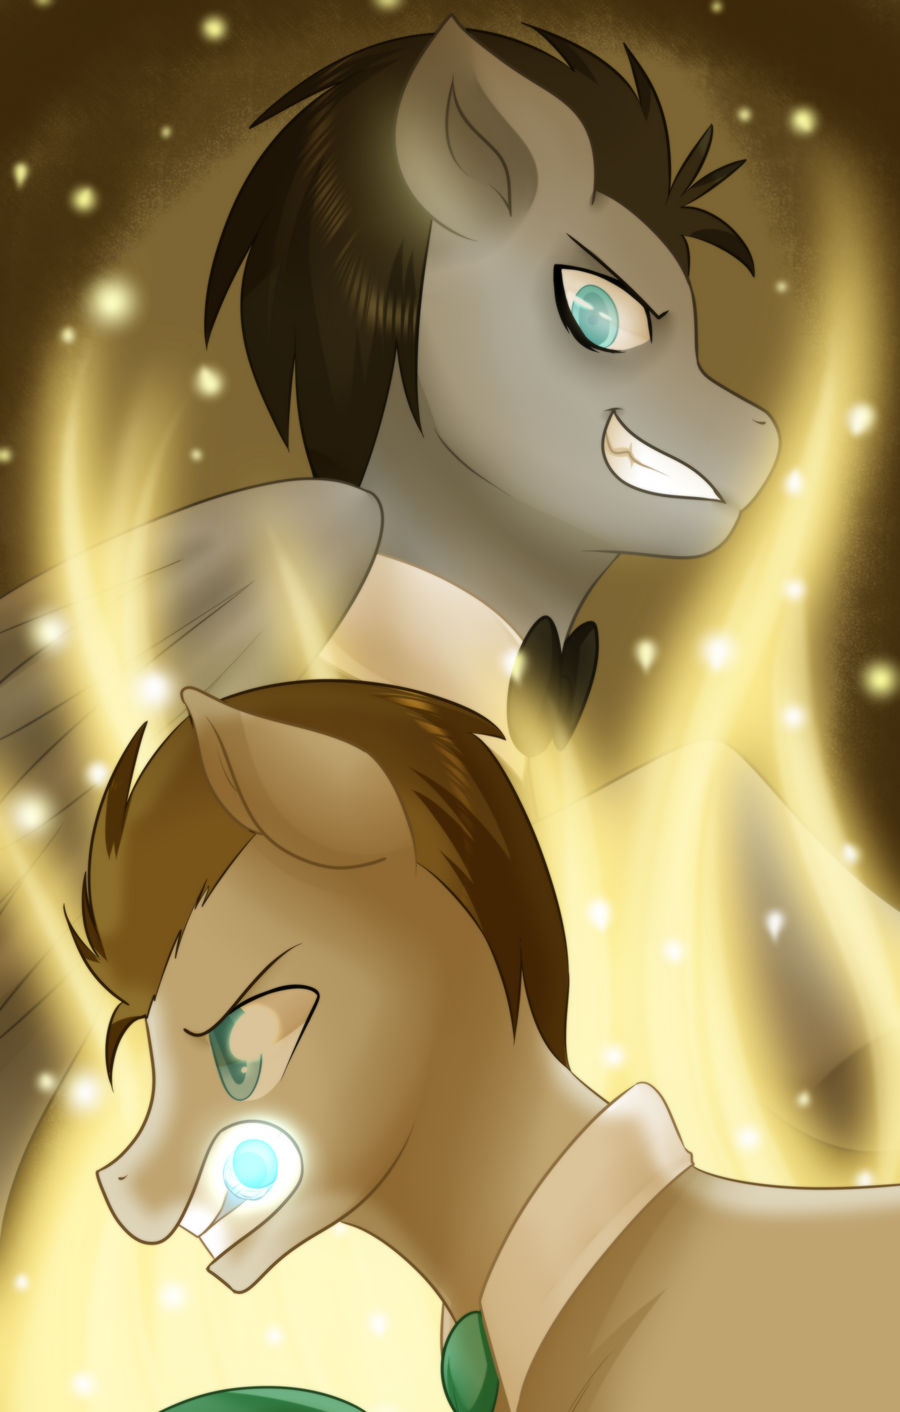 discord whooves fanfiction - 714×1120